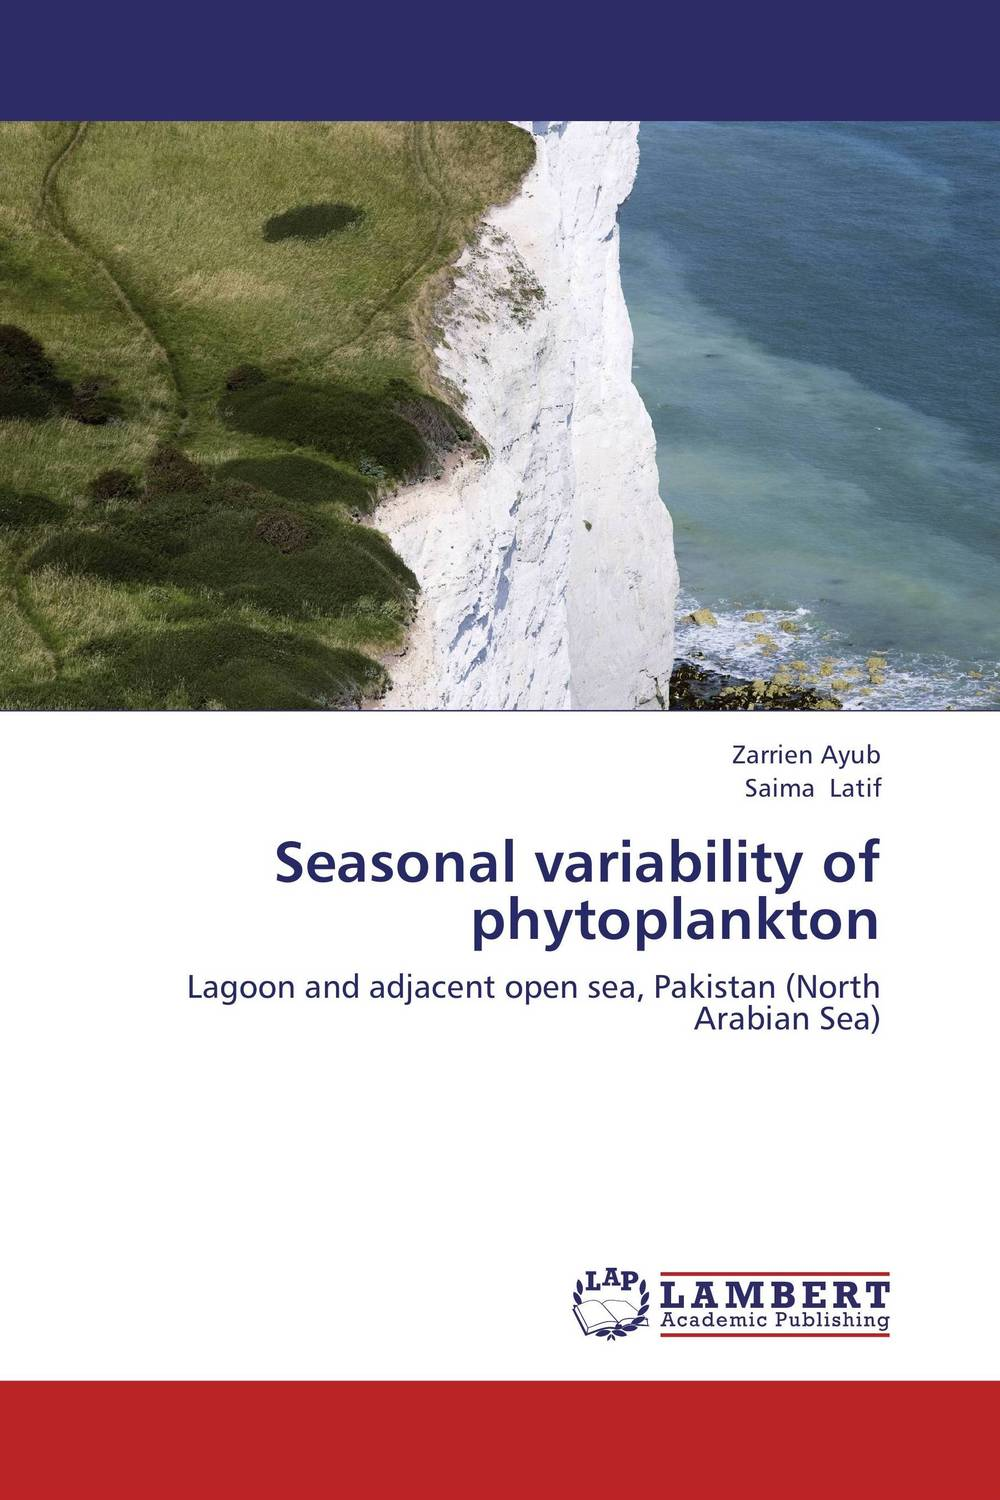 Seasonal variability of phytoplankton the influence of fire and elevated temperature on nec hsc and uhsc